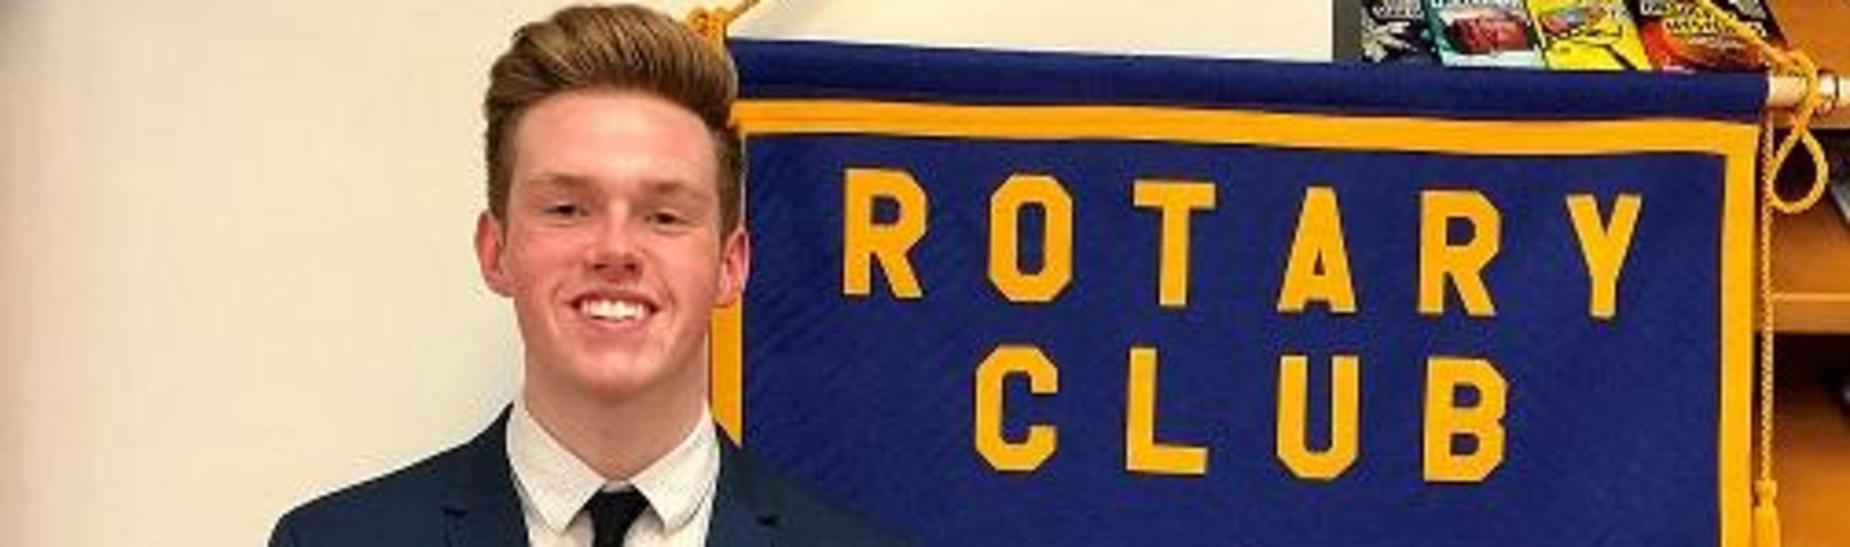 Clint Curfman took 1st place at the Rotary 4 Way Speech Contest at NBC.  Liberty Worthing captured 3rd place.  Clint advances to Regional competition in April.